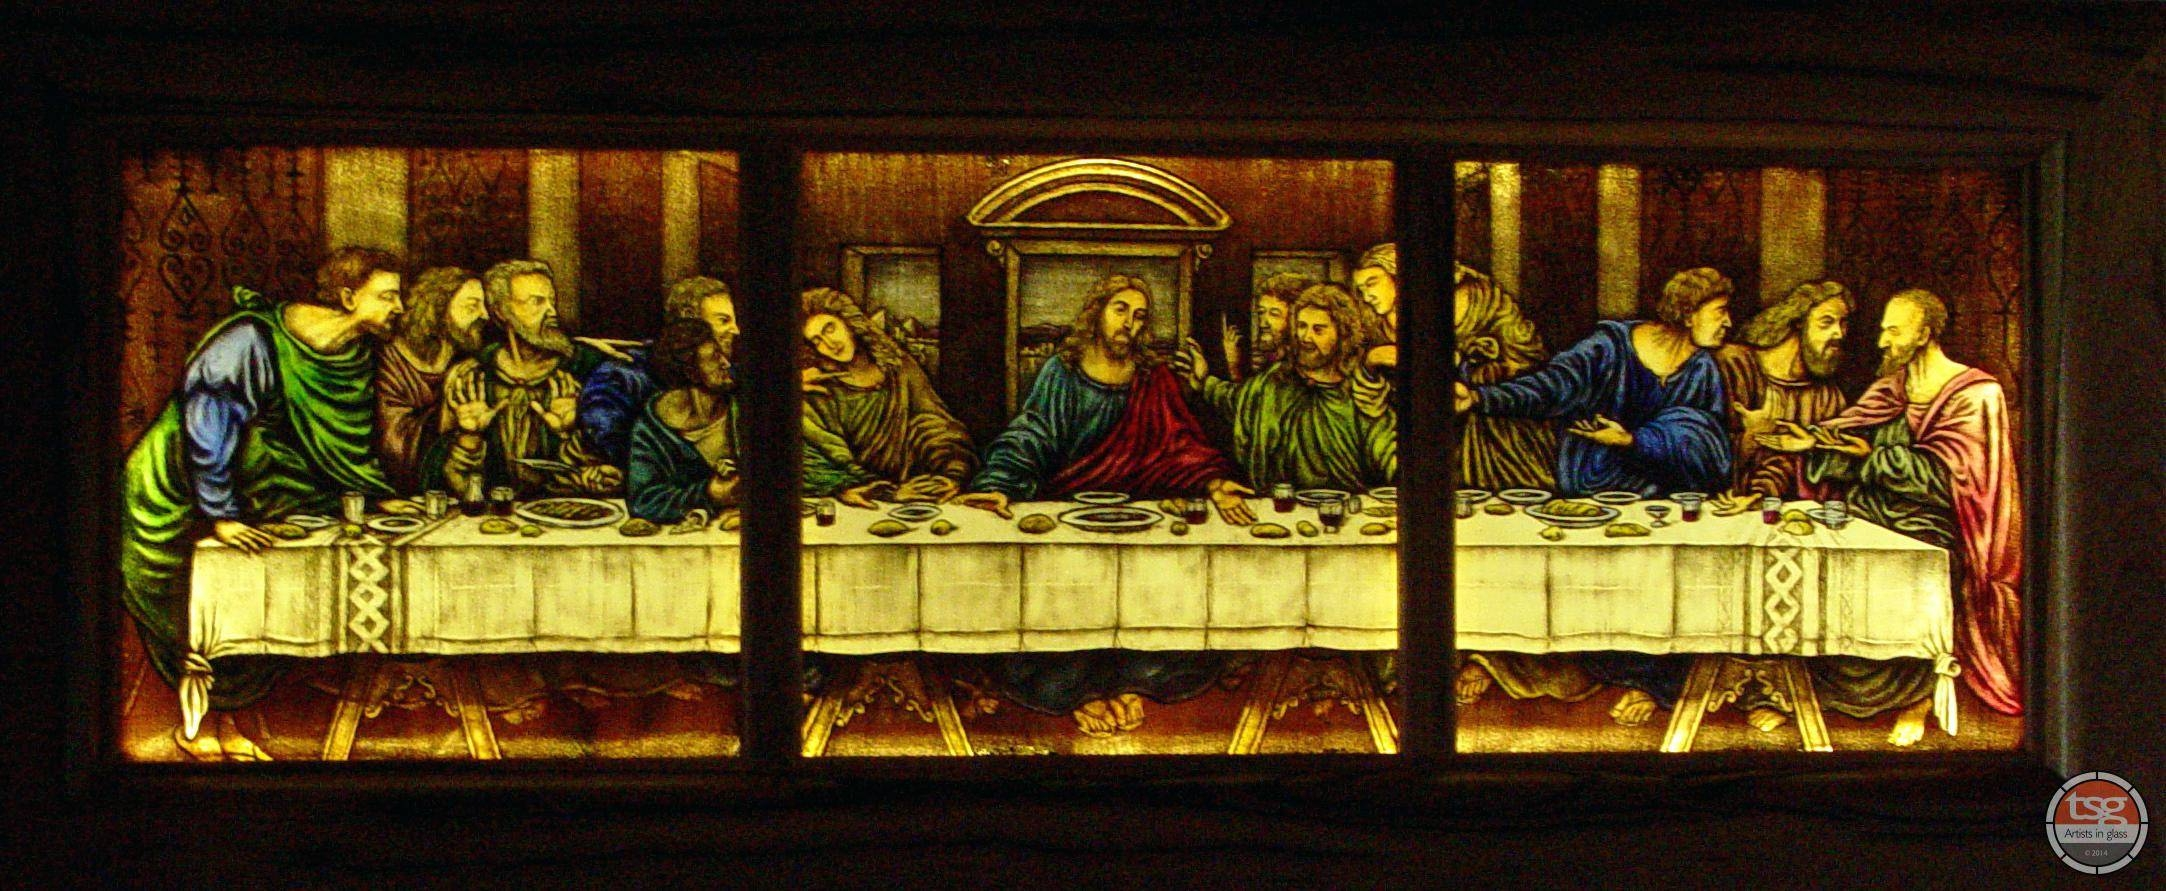 Wall Decor: Ergonomic Last Supper Wall Decor Images (View 20 of 20)